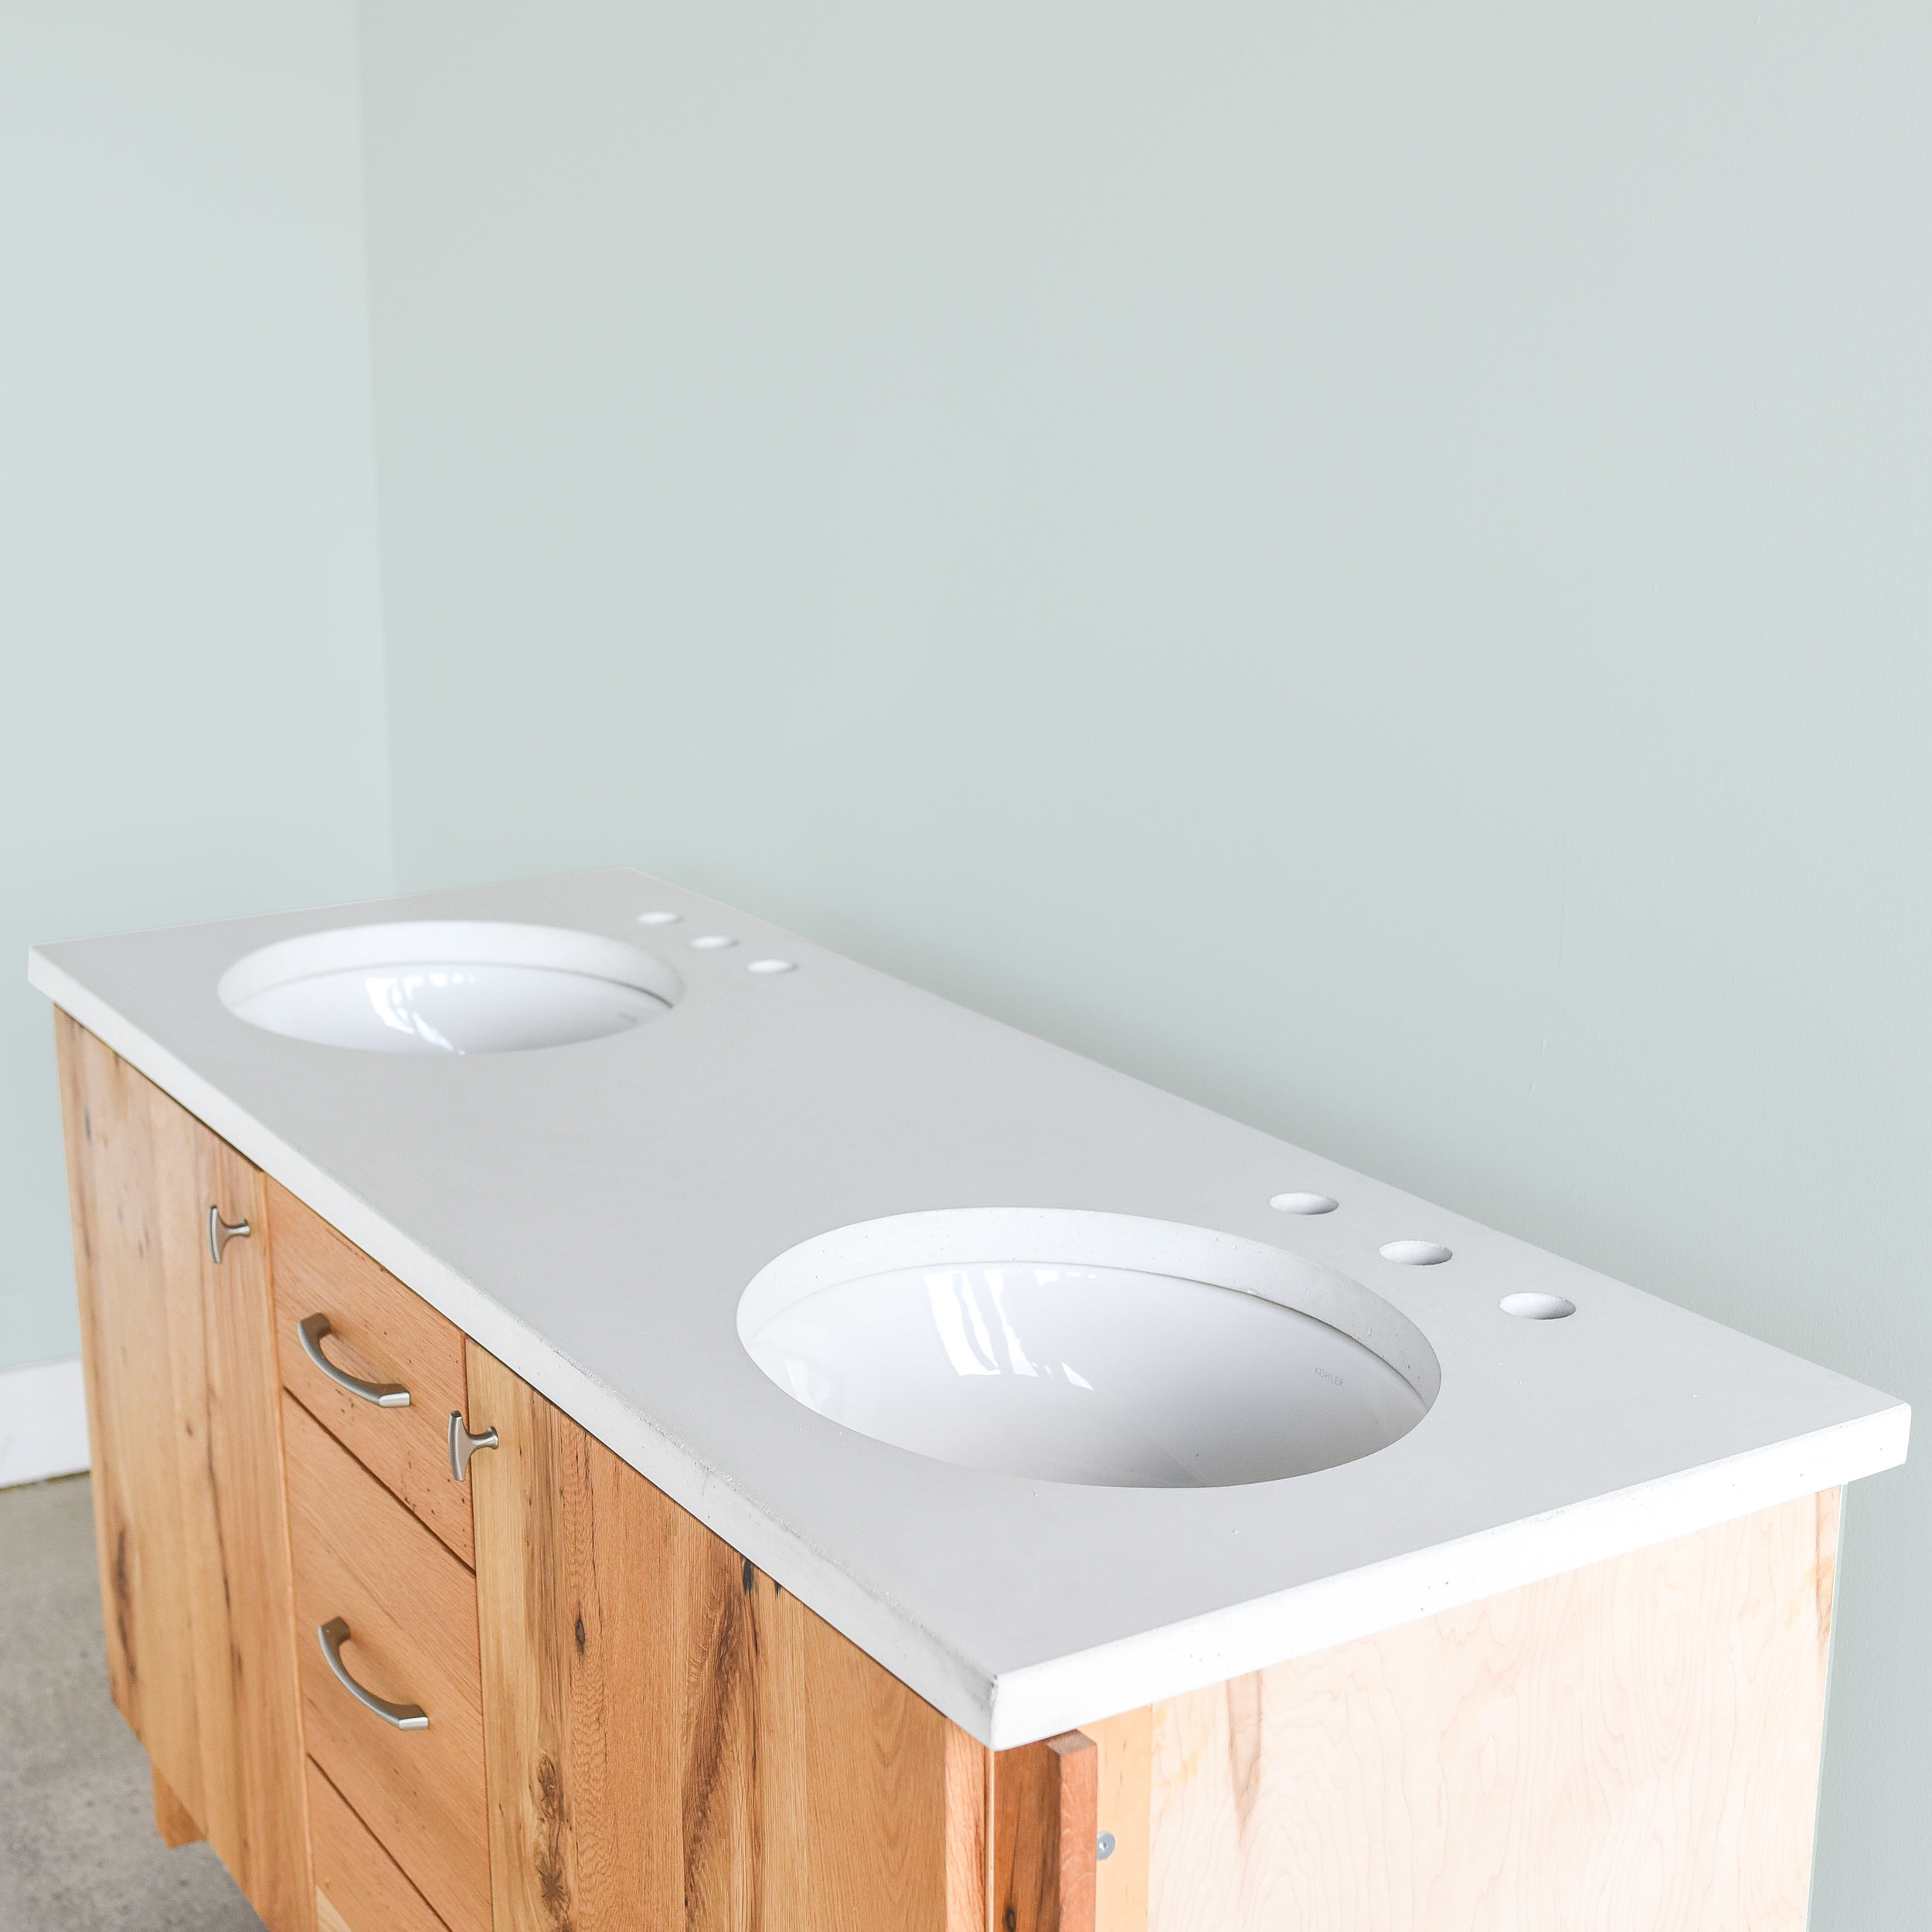 Concrete Vanity Top / Double Undermount Sinks - in white